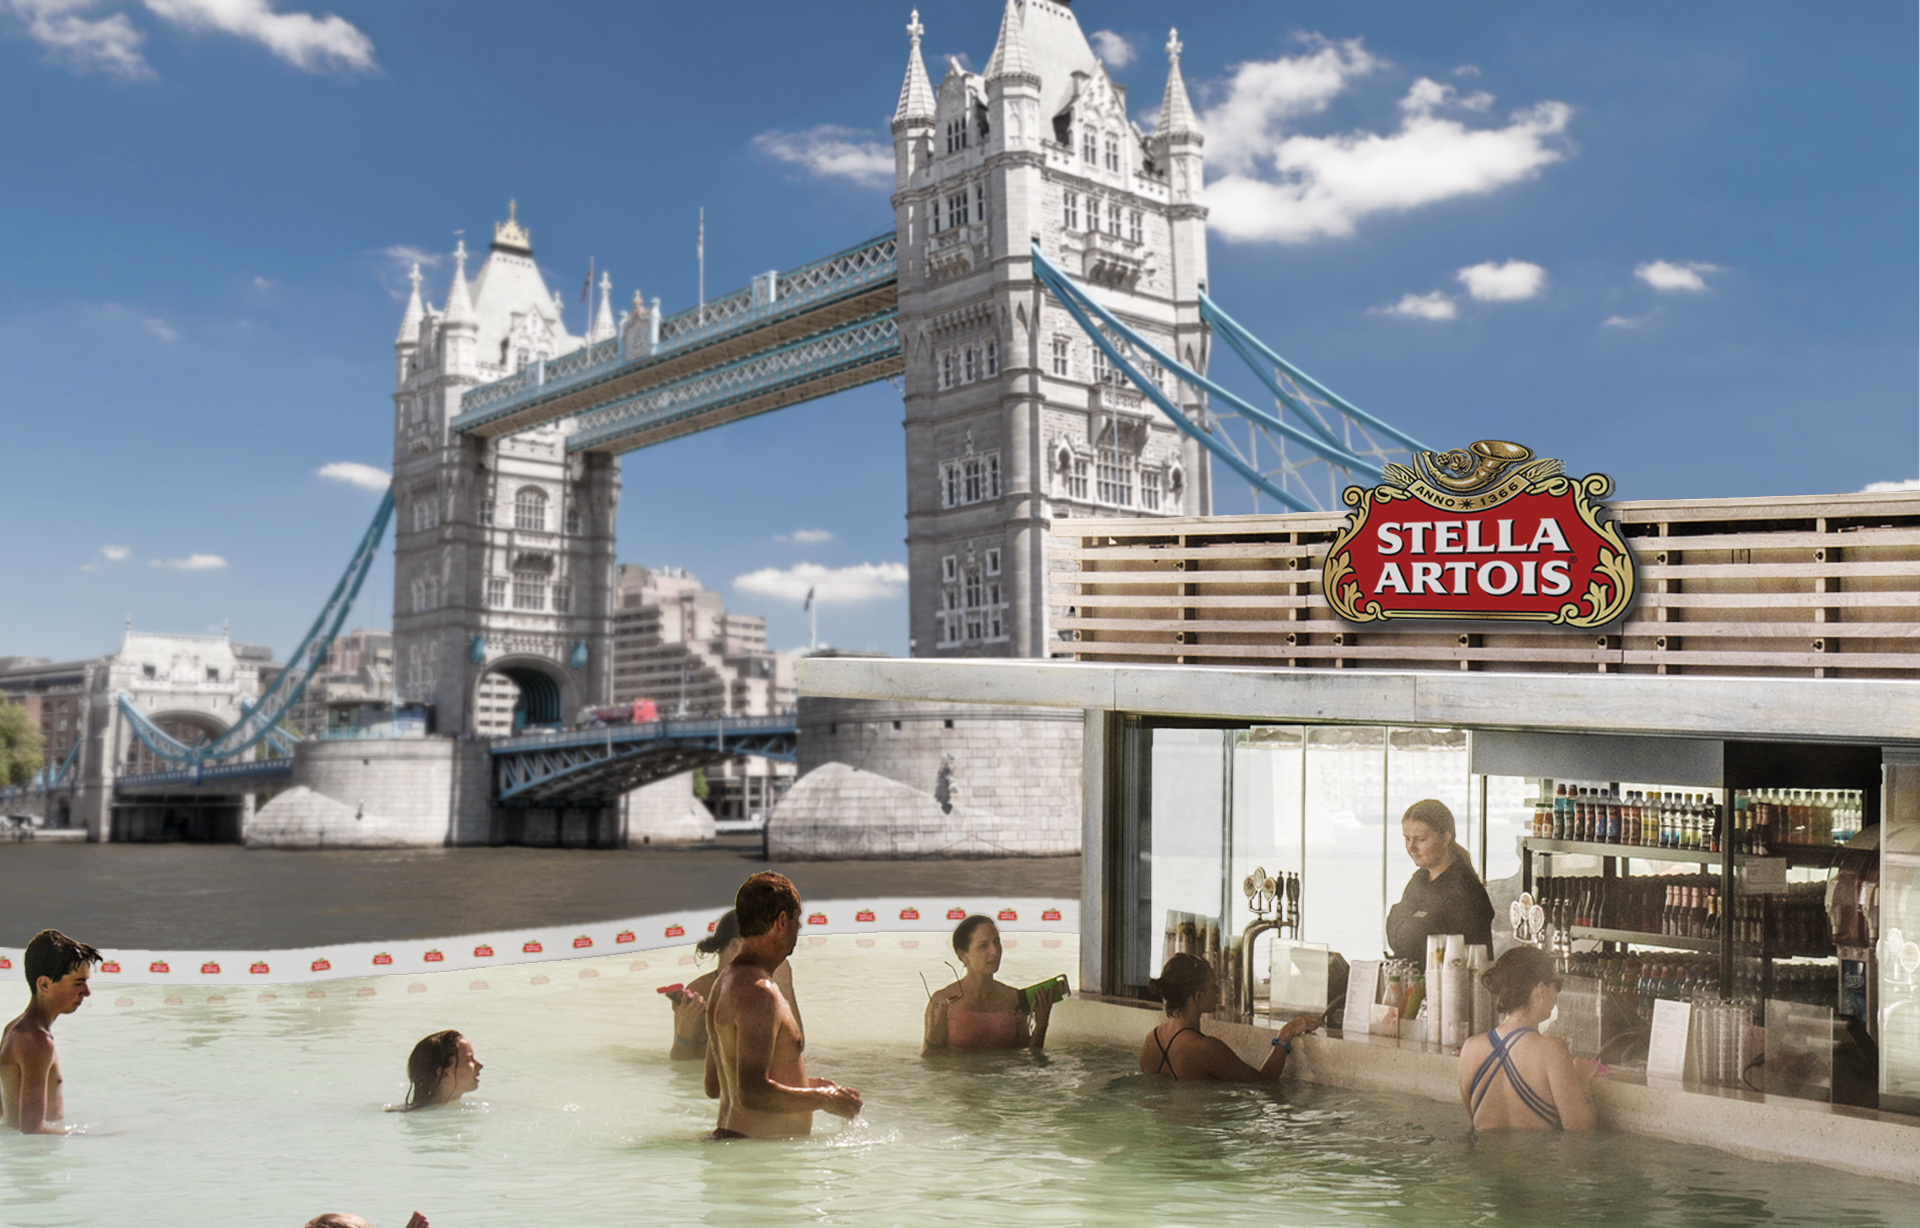 Stella Artois will filter out part of the Thames for the day to create the river's first ever swim-up bar.